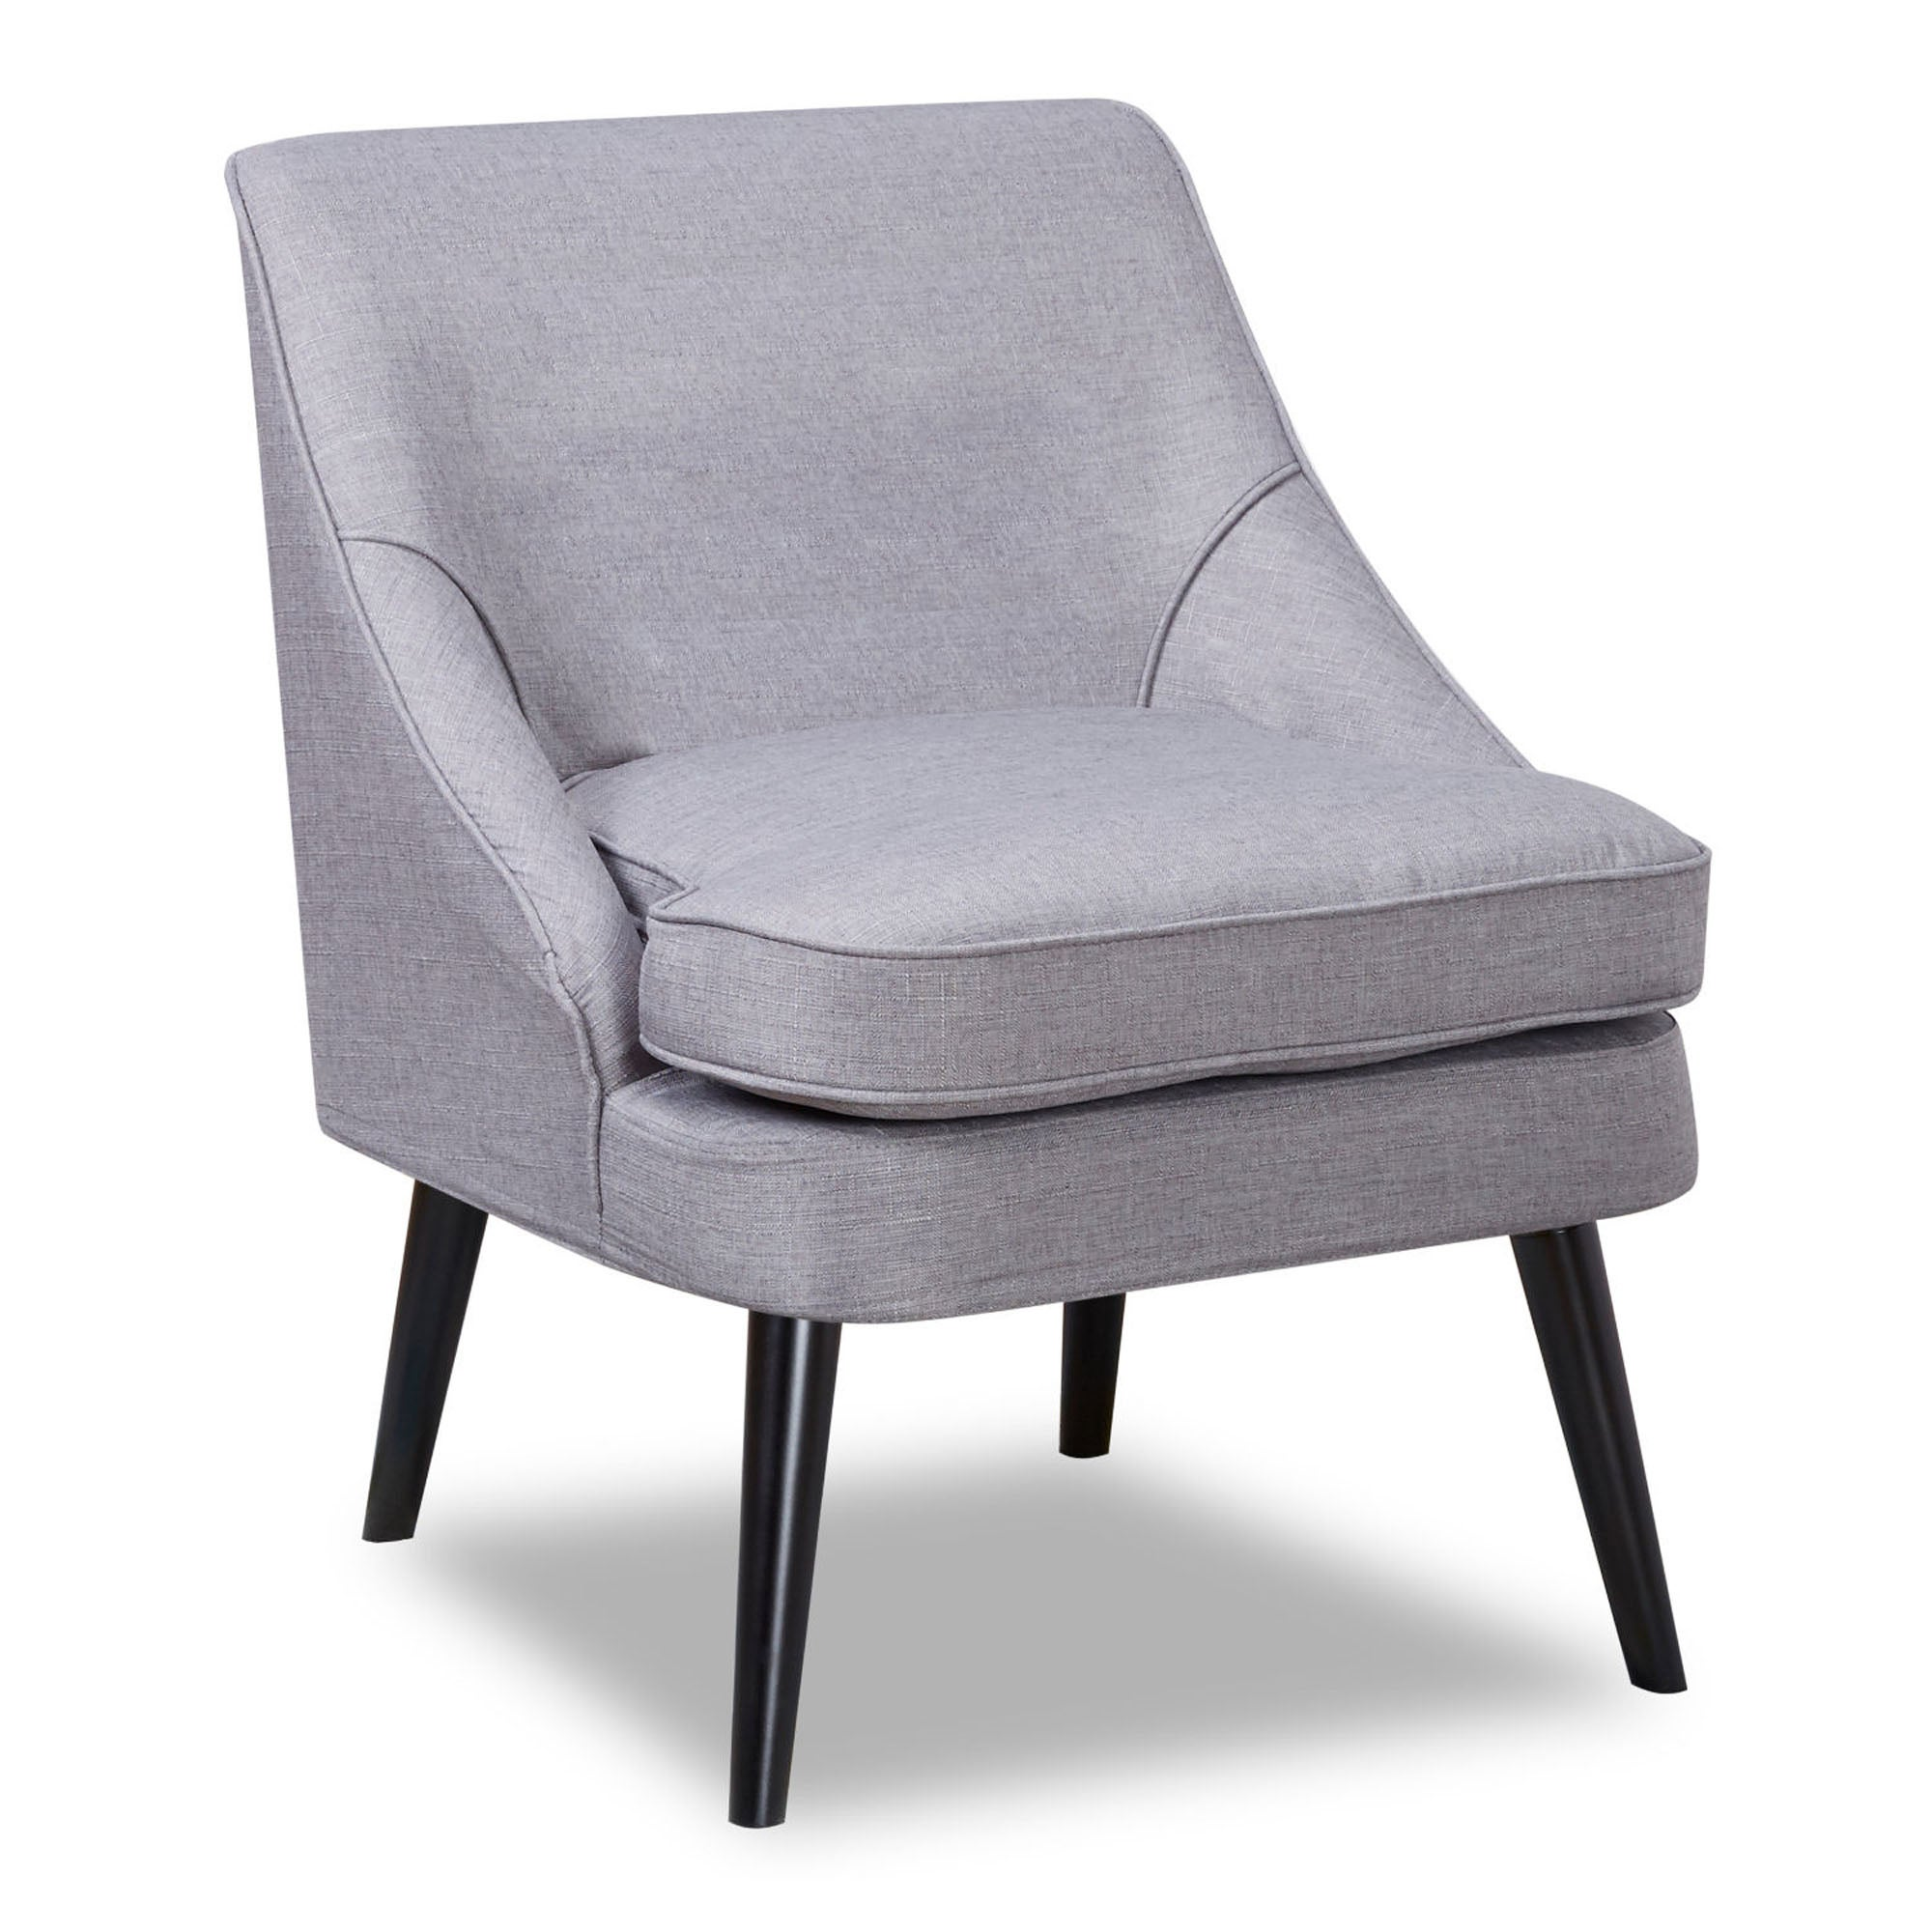 Photo of Crawford fabric armchair